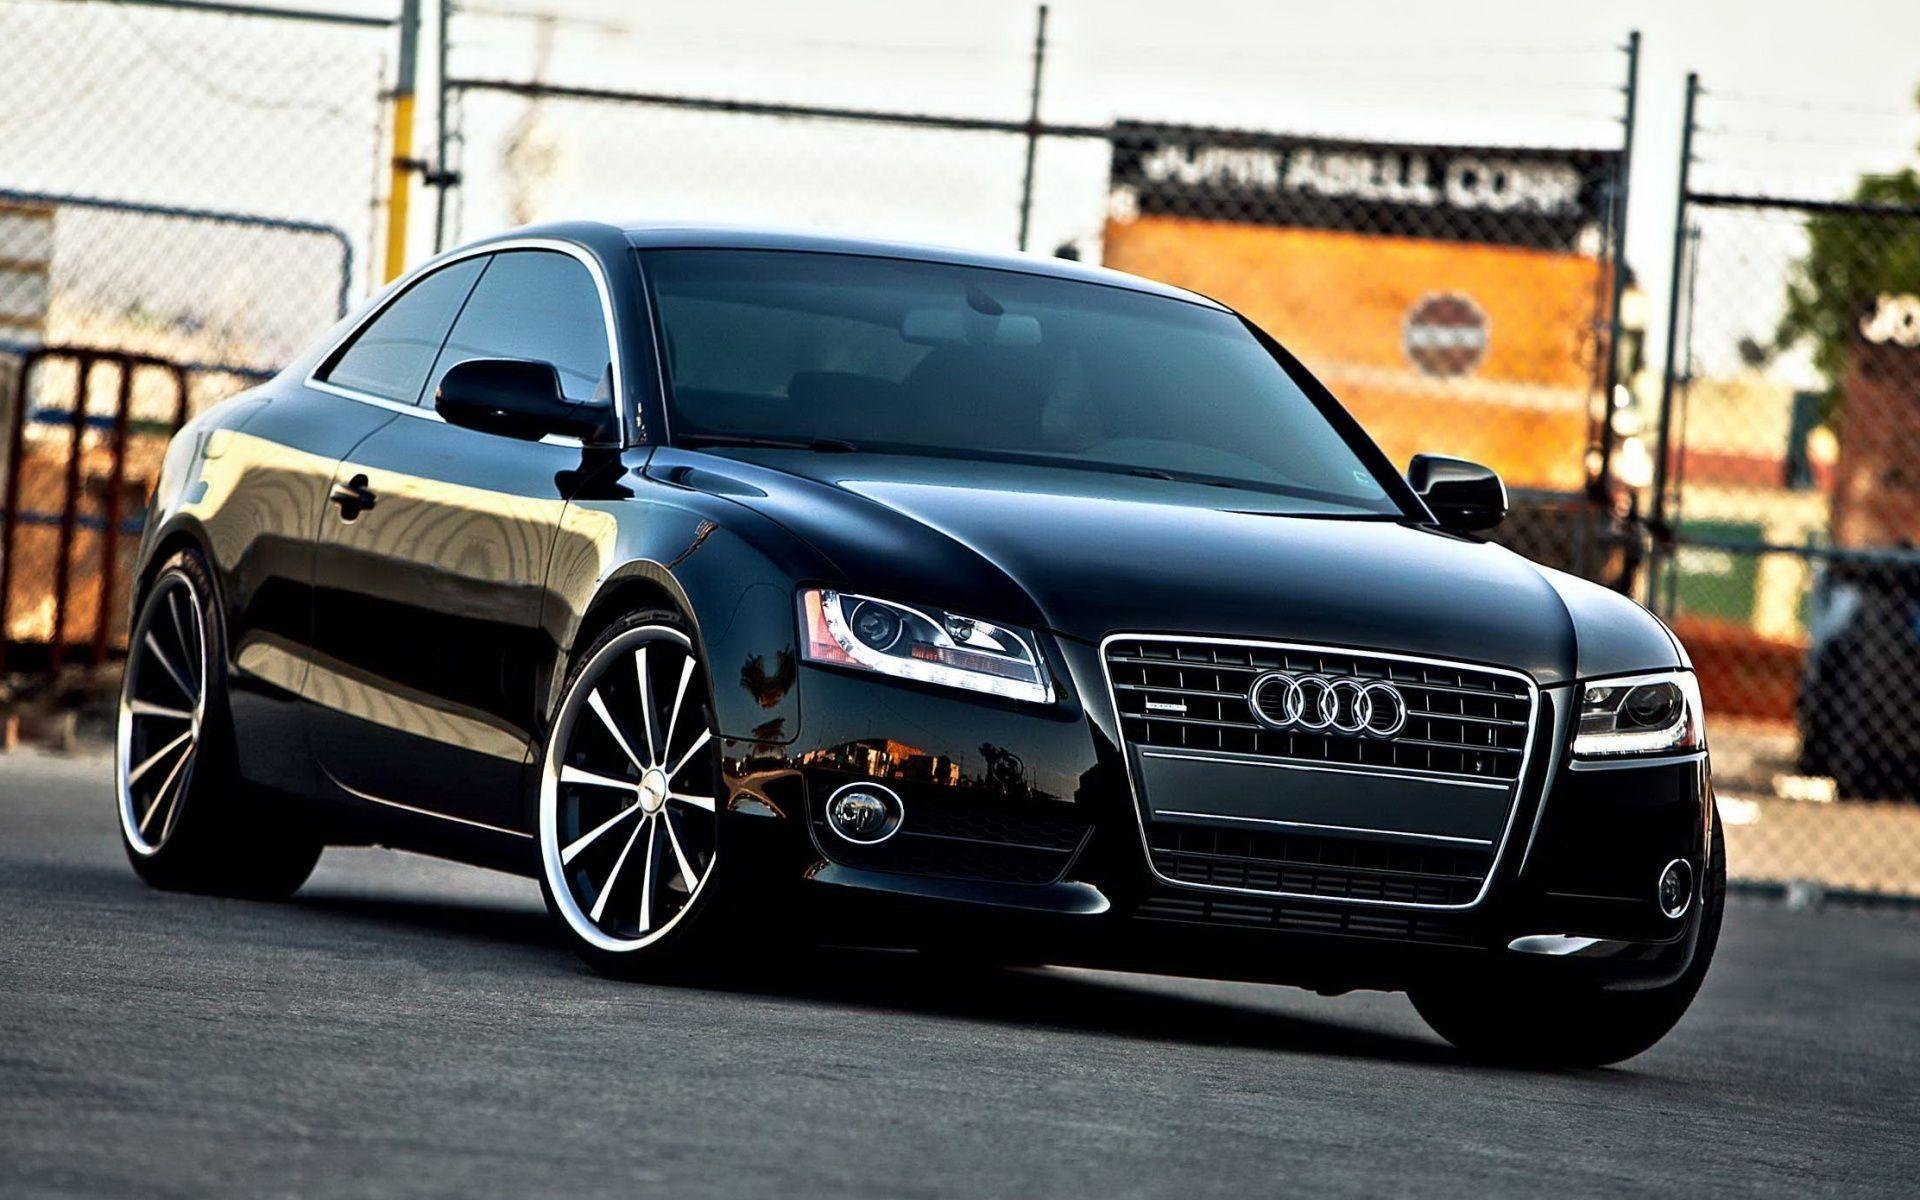 Latest Audi A5 Wallpapers Wallpaper Cave Free Download